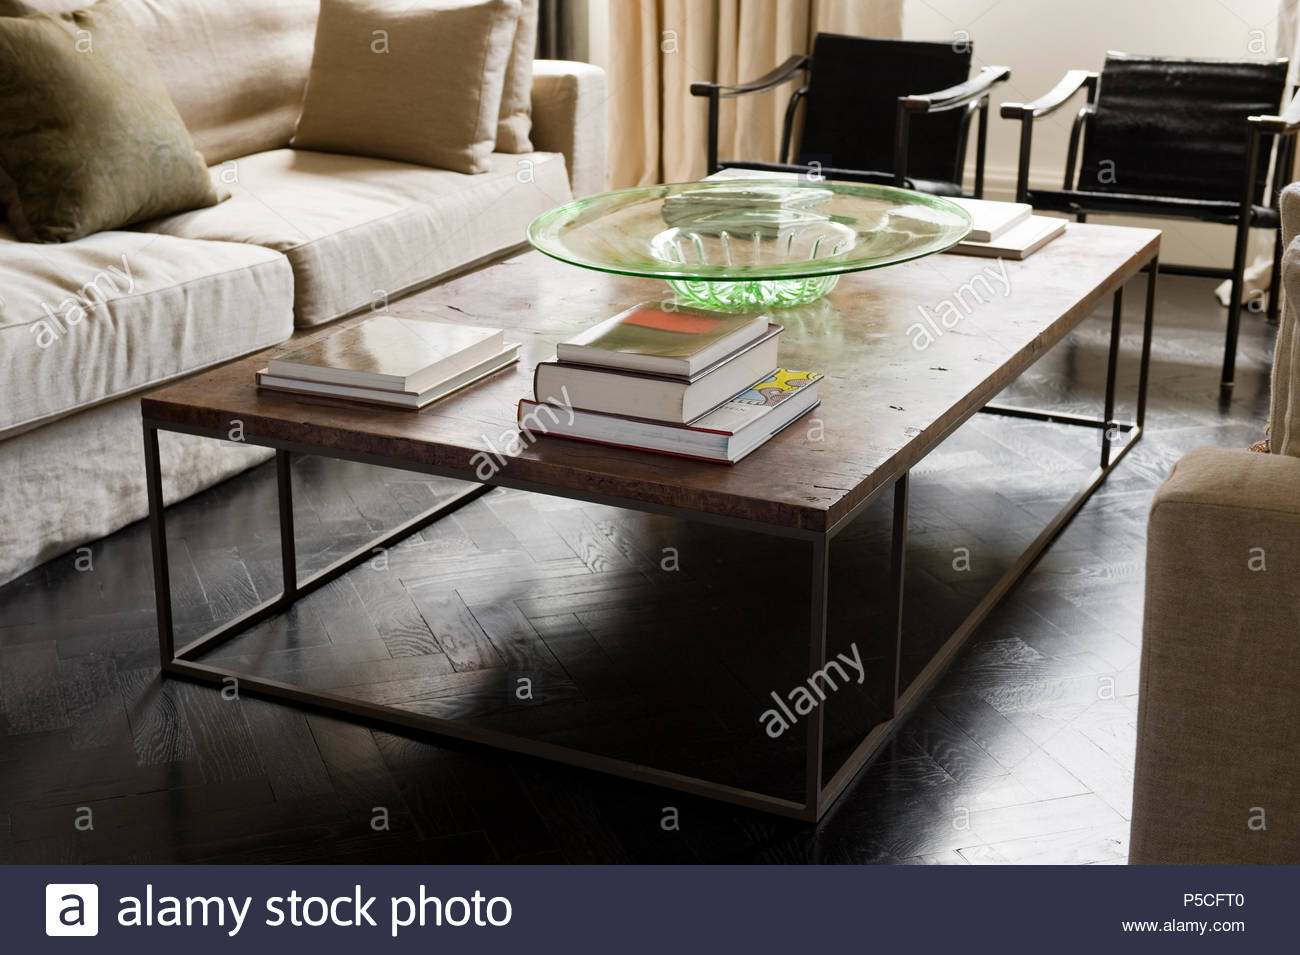 Coffee table in modern living room - Stock Image